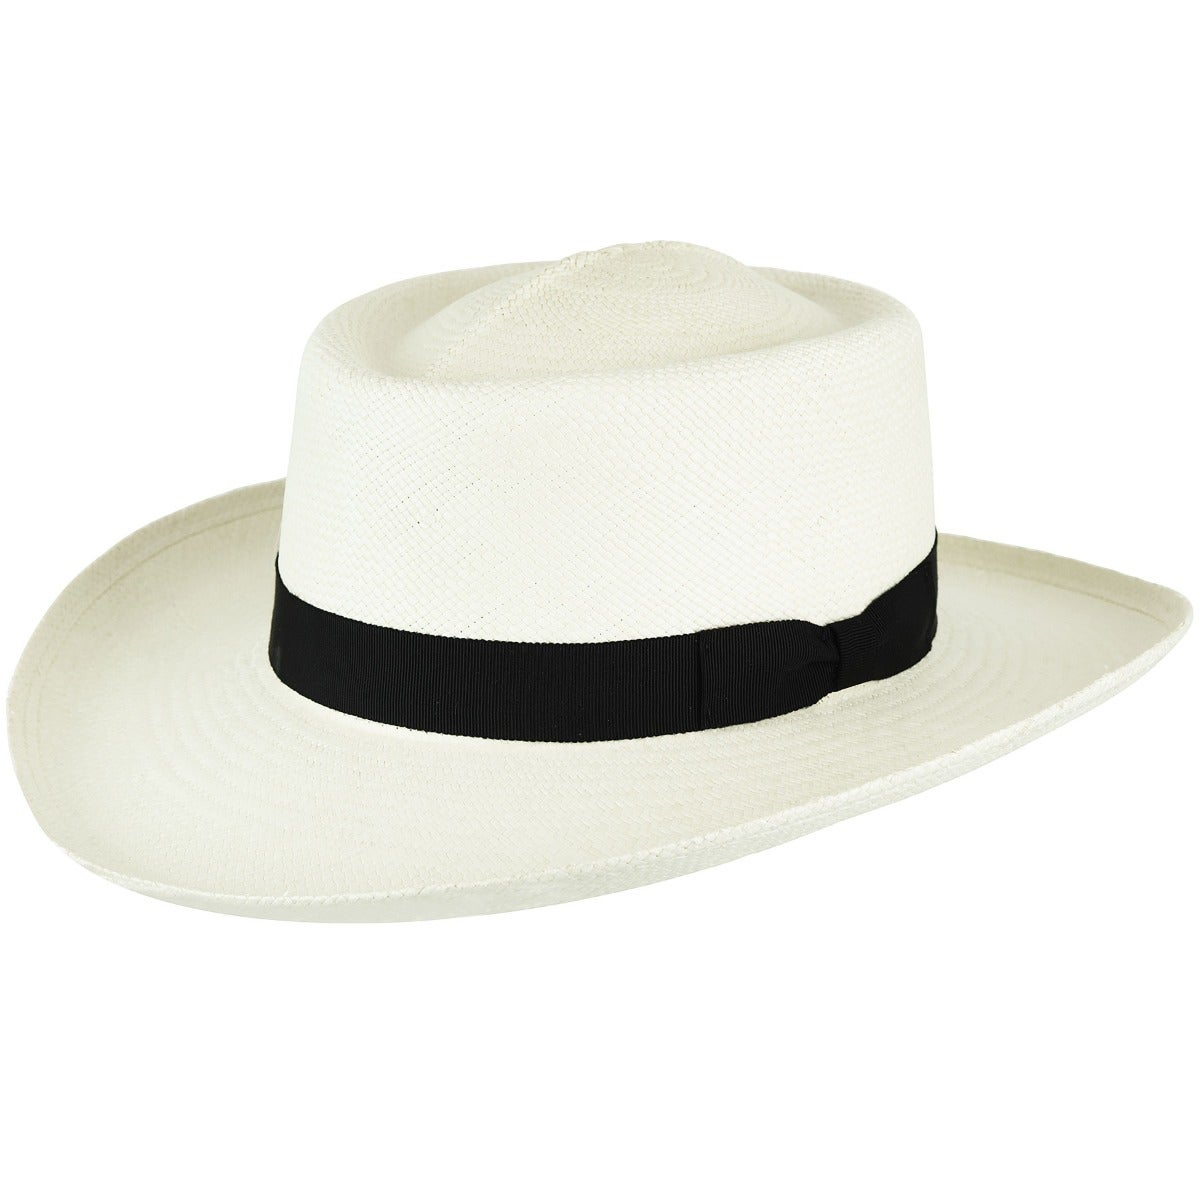 1930s Style Mens Hats and Caps Trinidad Panama Boater $108.00 AT vintagedancer.com